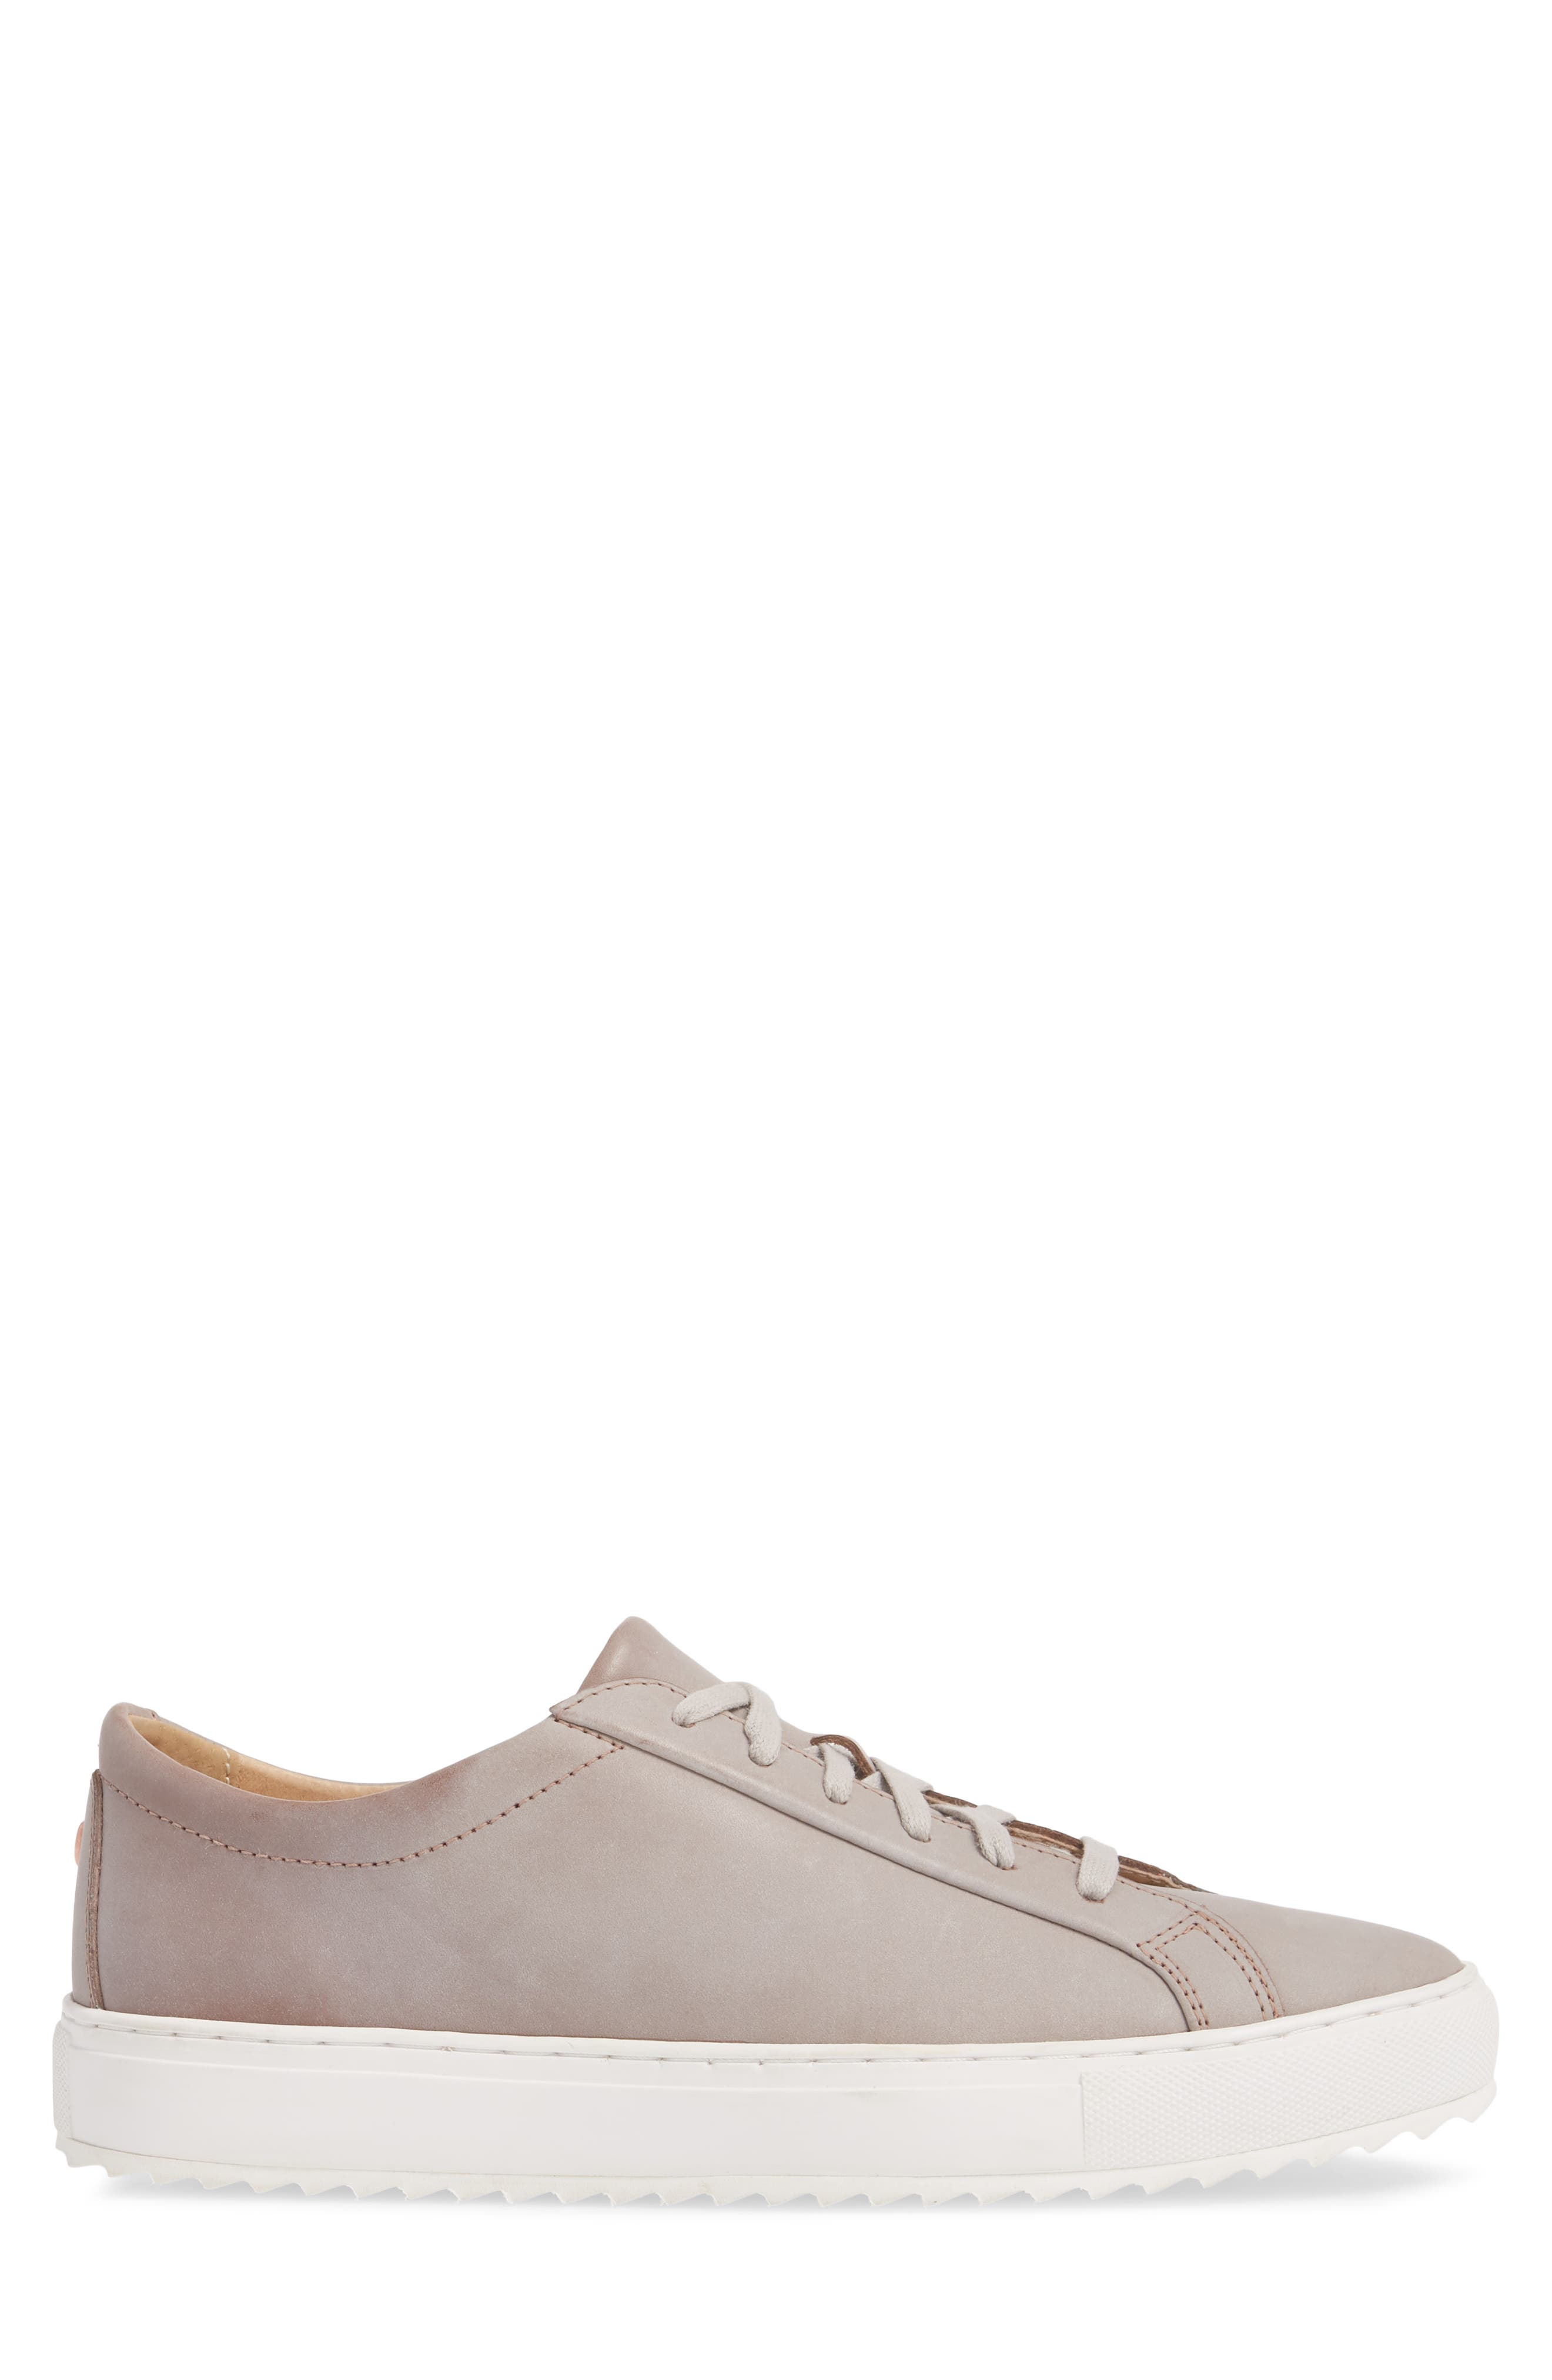 Kennedy Lugged Sneaker,                             Alternate thumbnail 3, color,                             Sand Stone Leather